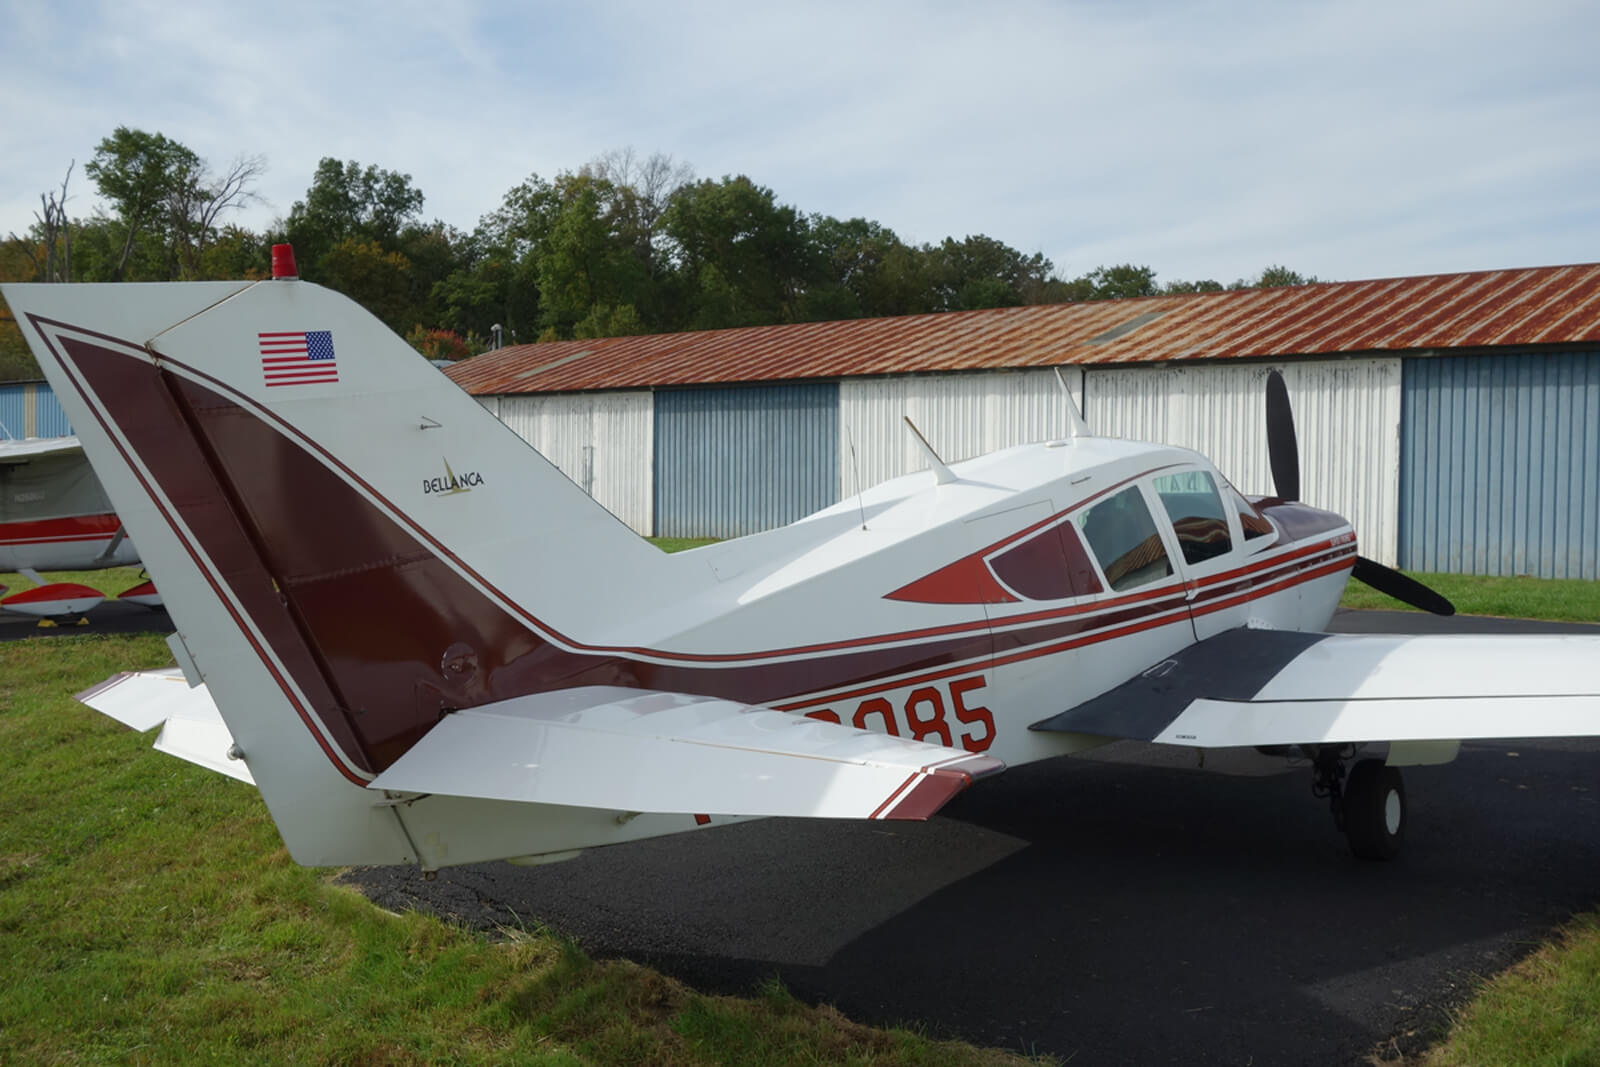 1978 Bellanca Viking - FOR SALE at Princeton Airport – Contact Ken Nierenberg at 609-731-4628 for details.